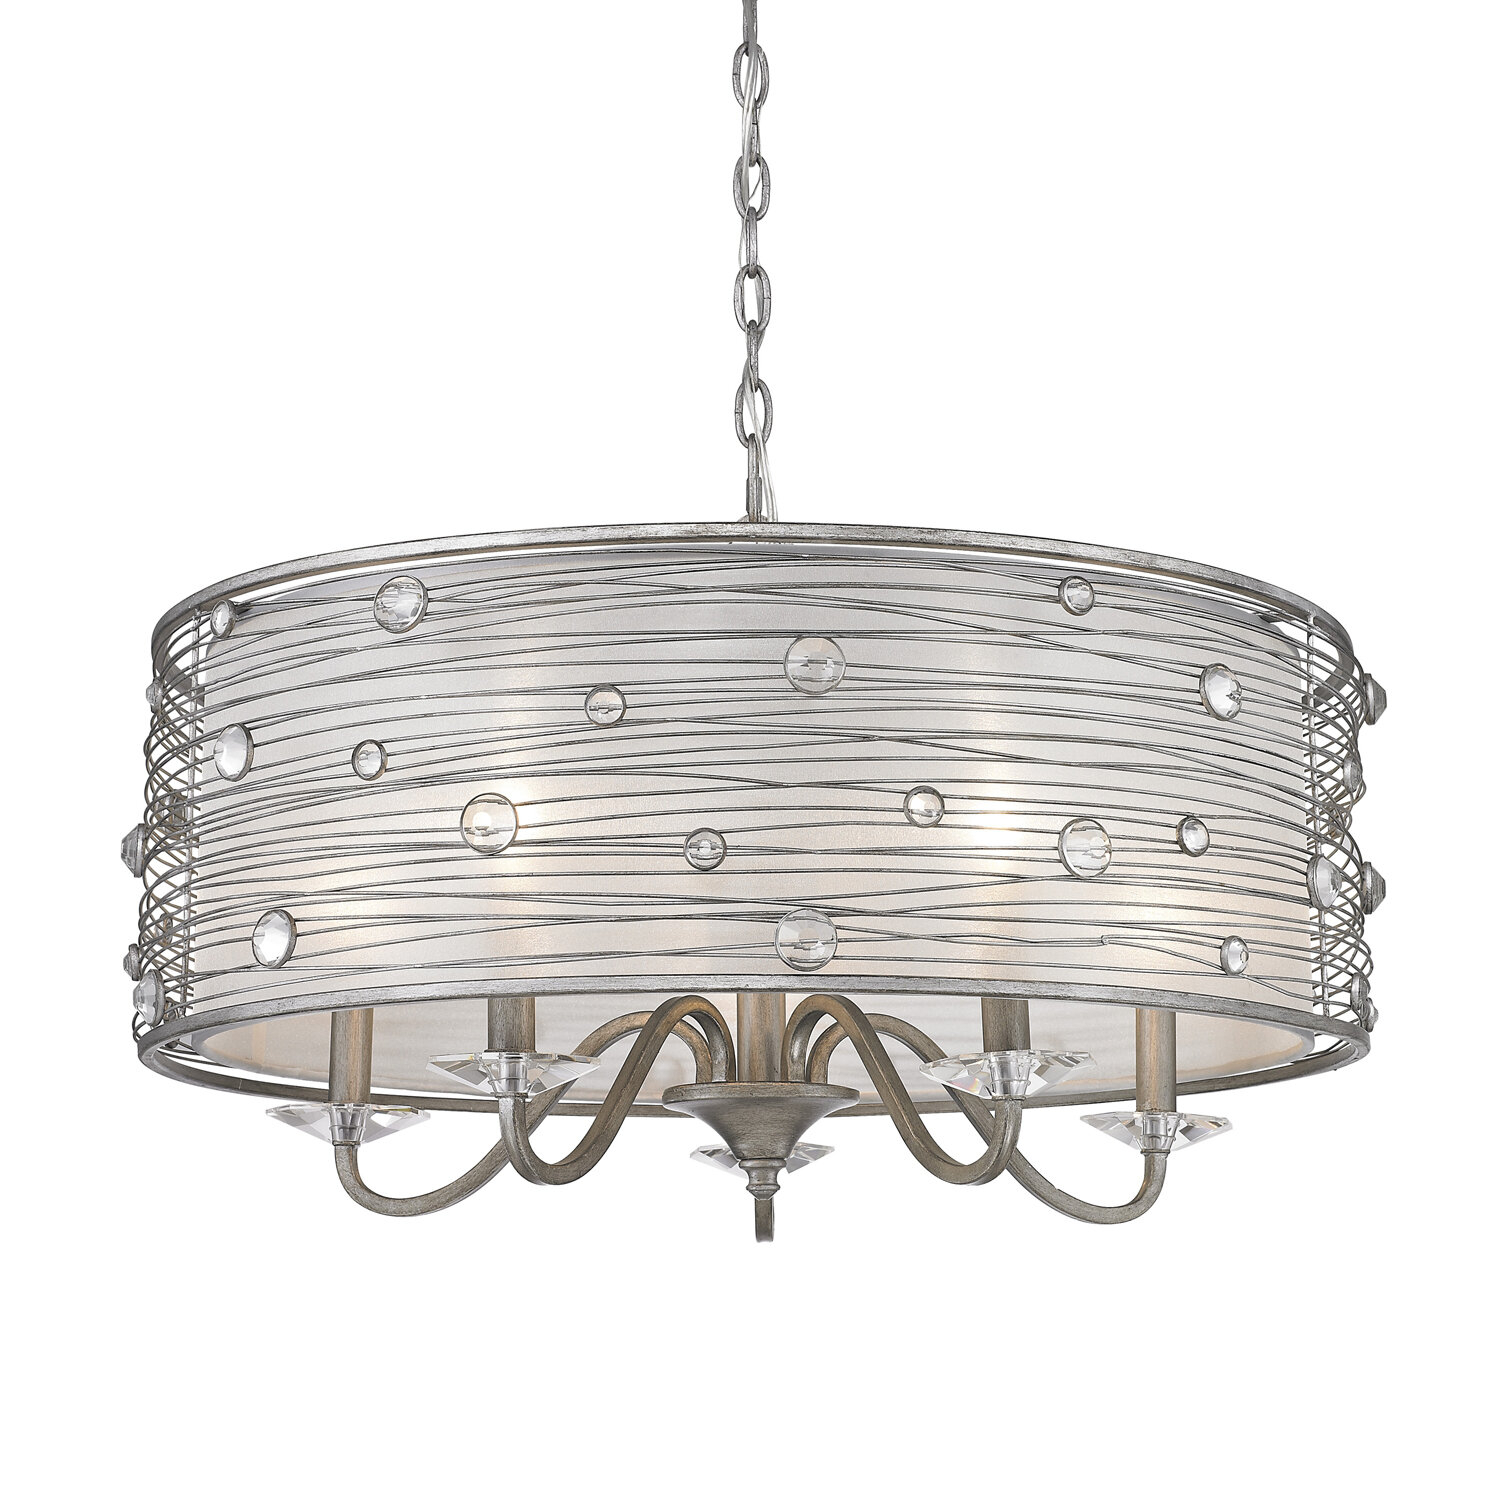 Hermione 5-Light Drum Chandelier intended for Hermione 1-Light Single Drum Pendants (Image 16 of 30)